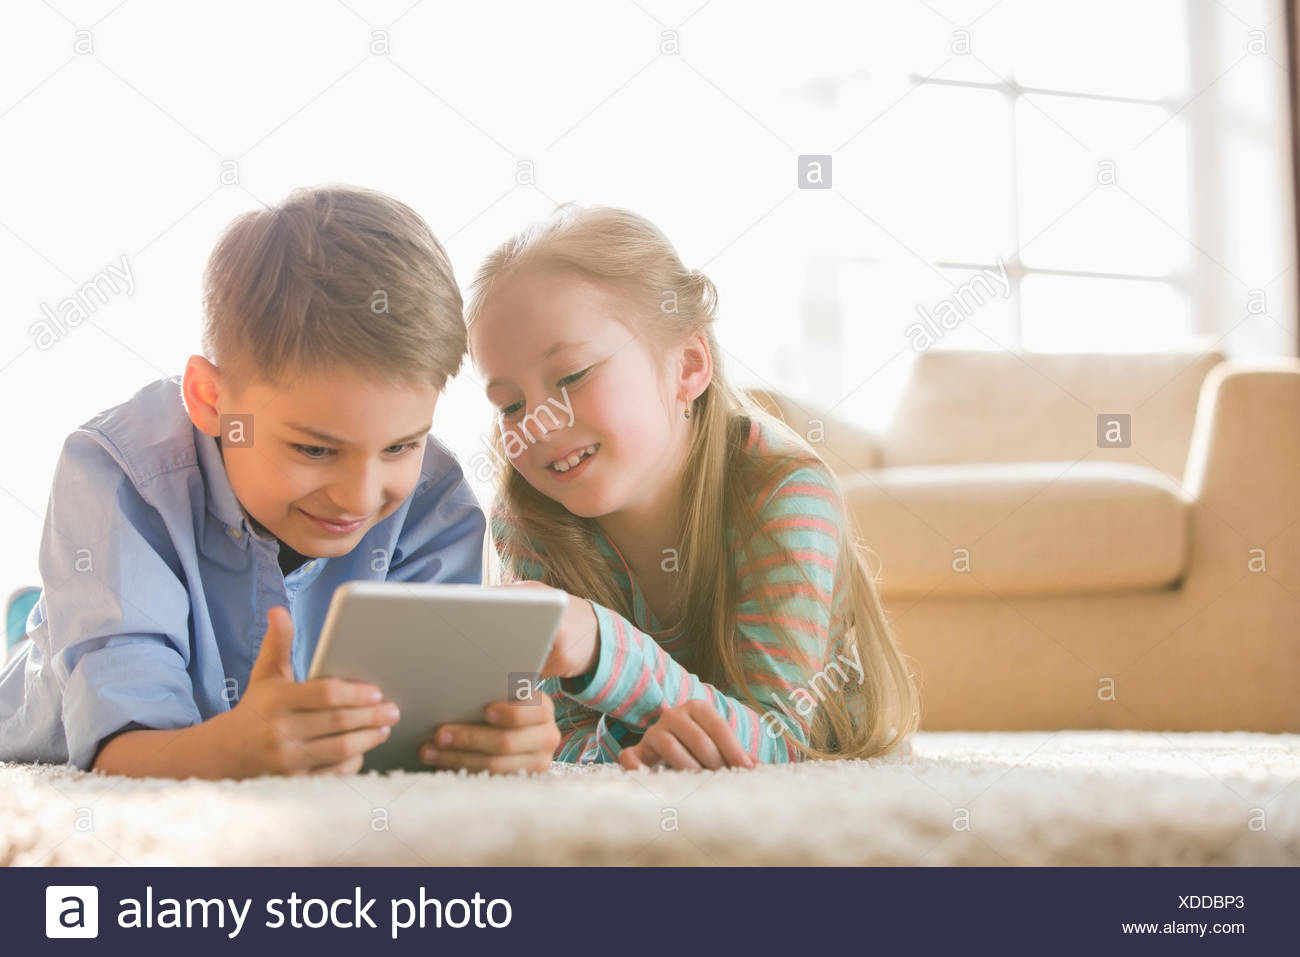 Brother and sister using digital tablet on floor at home Stock Photo